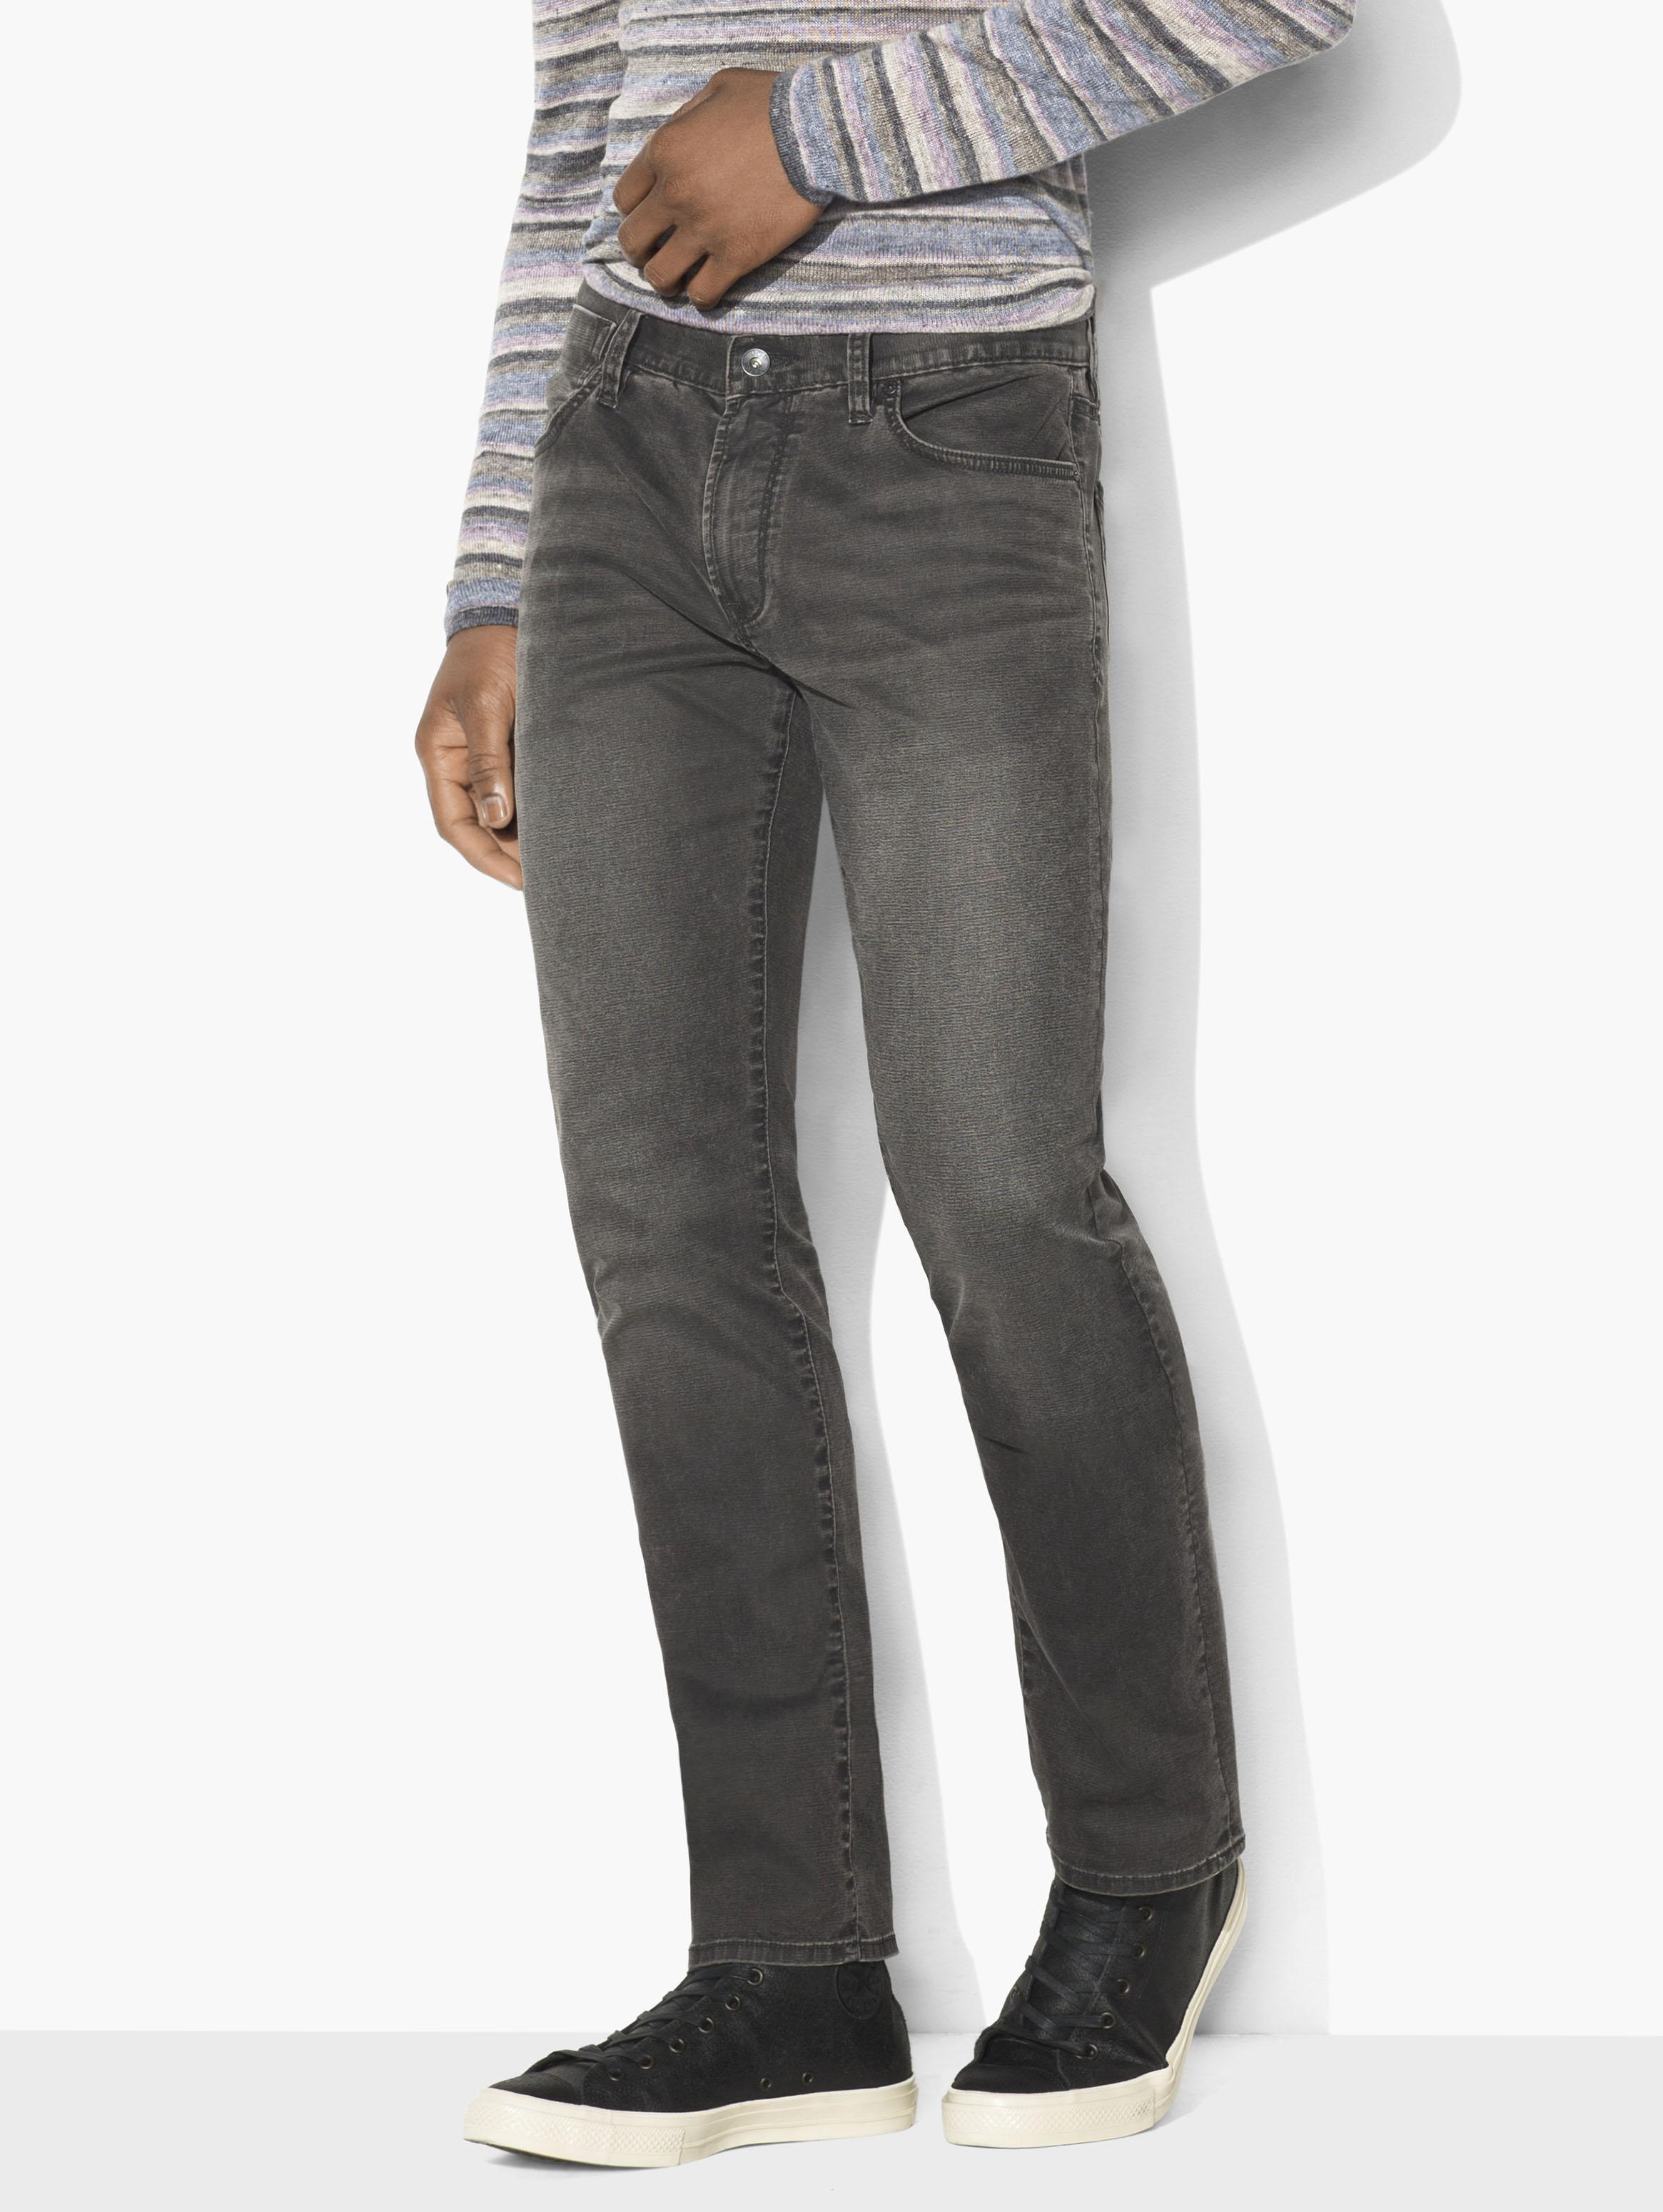 Wight Faded & Washed Jean